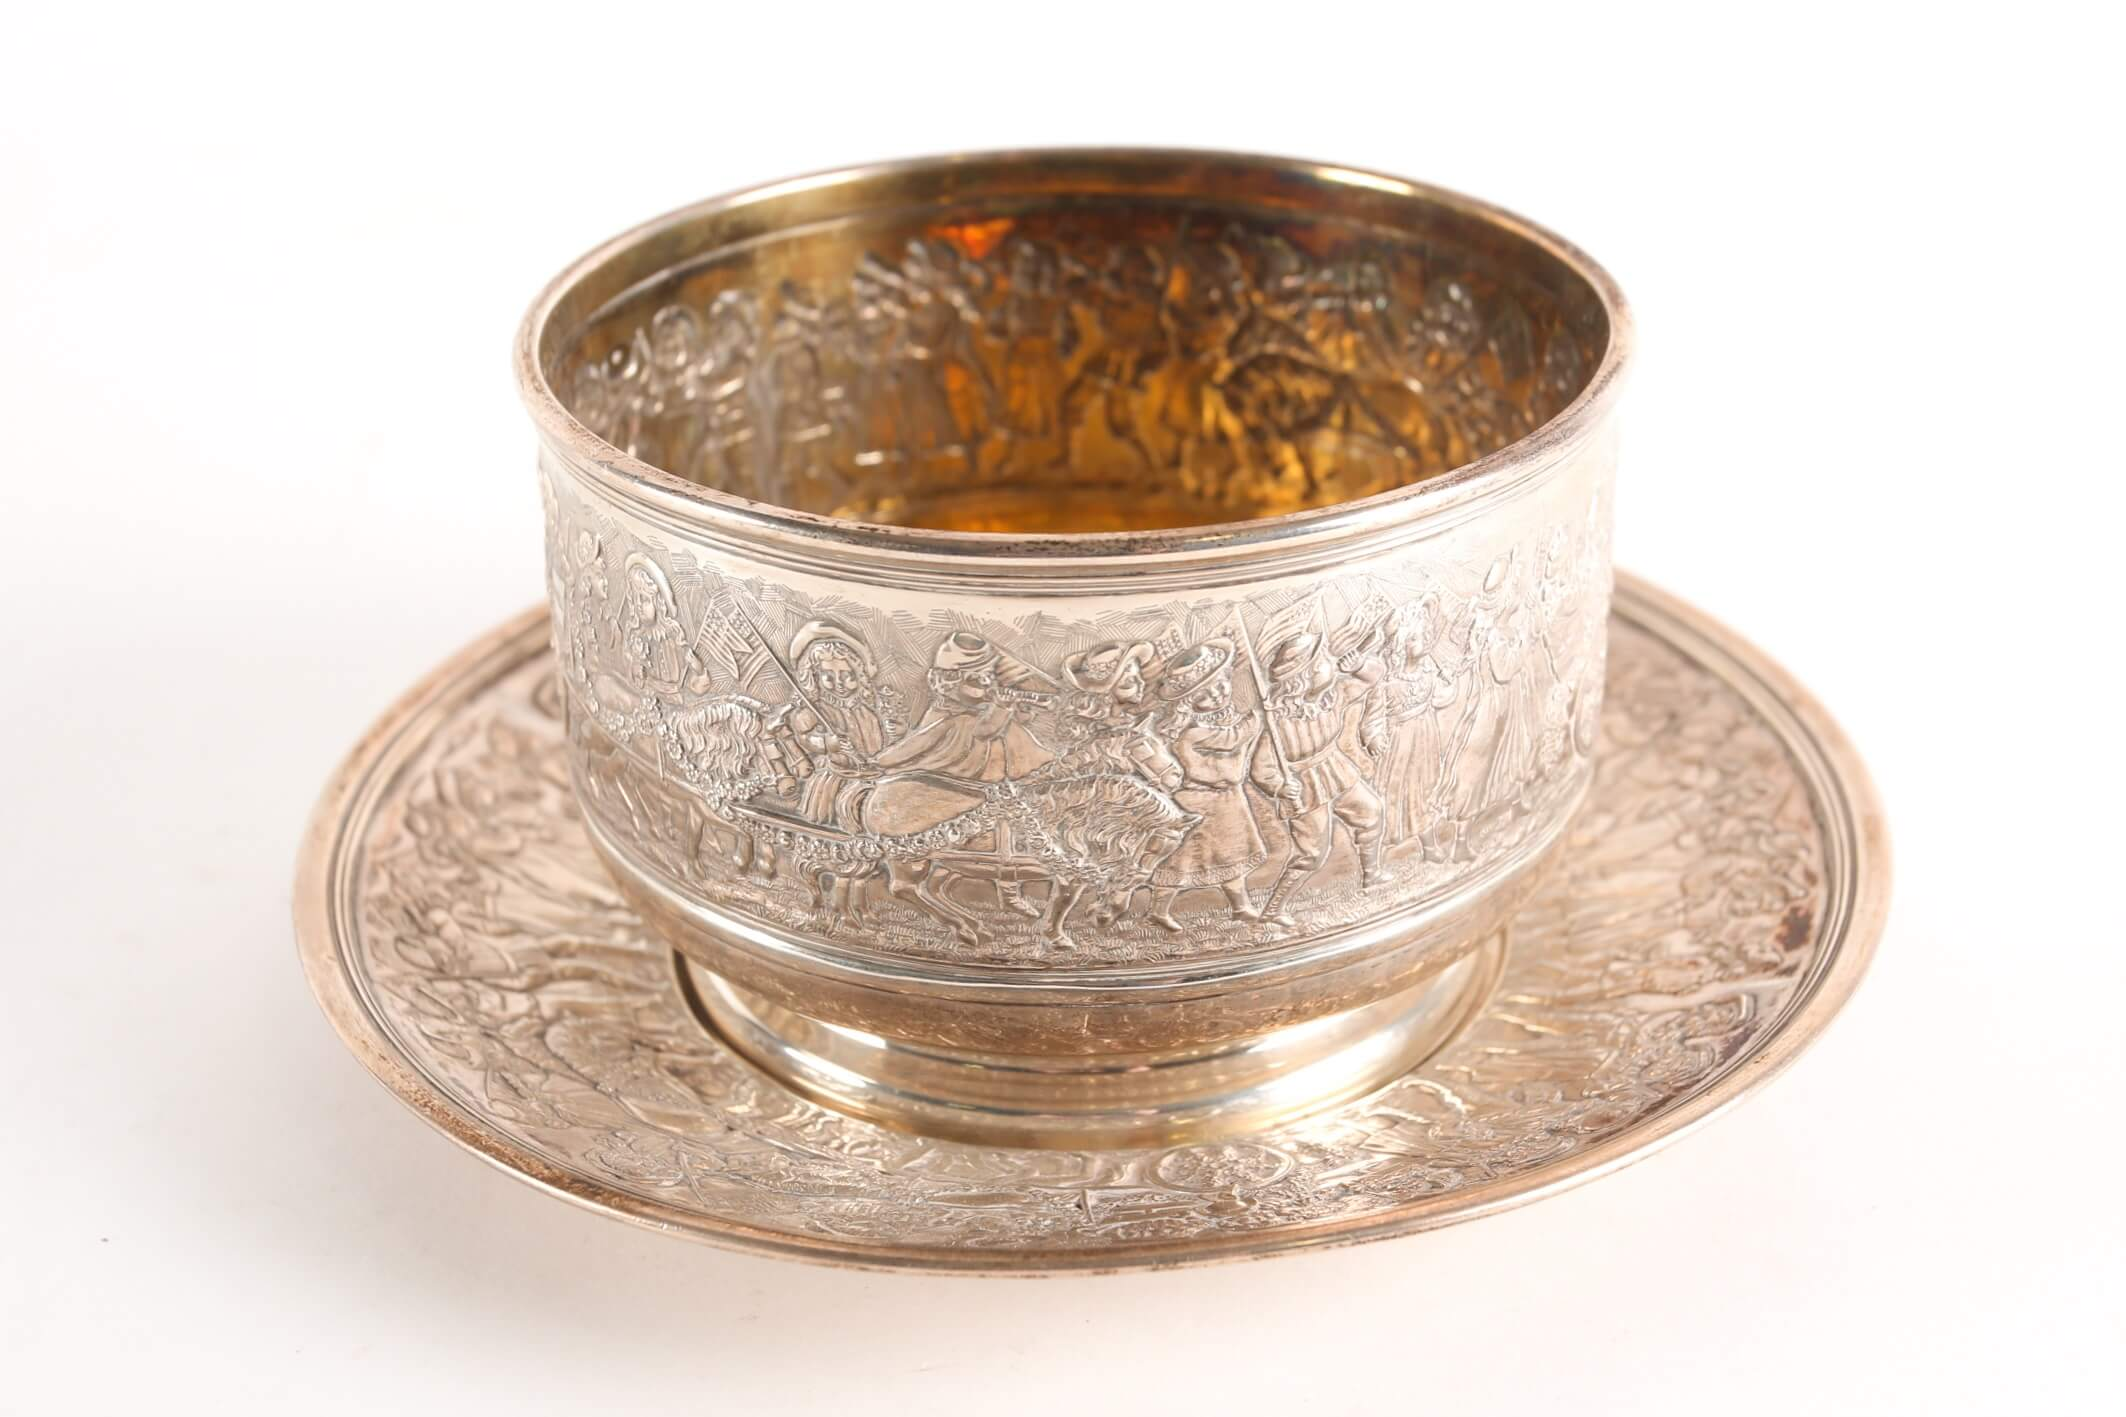 A Tiffany sterling silver fingerbowl and saucer